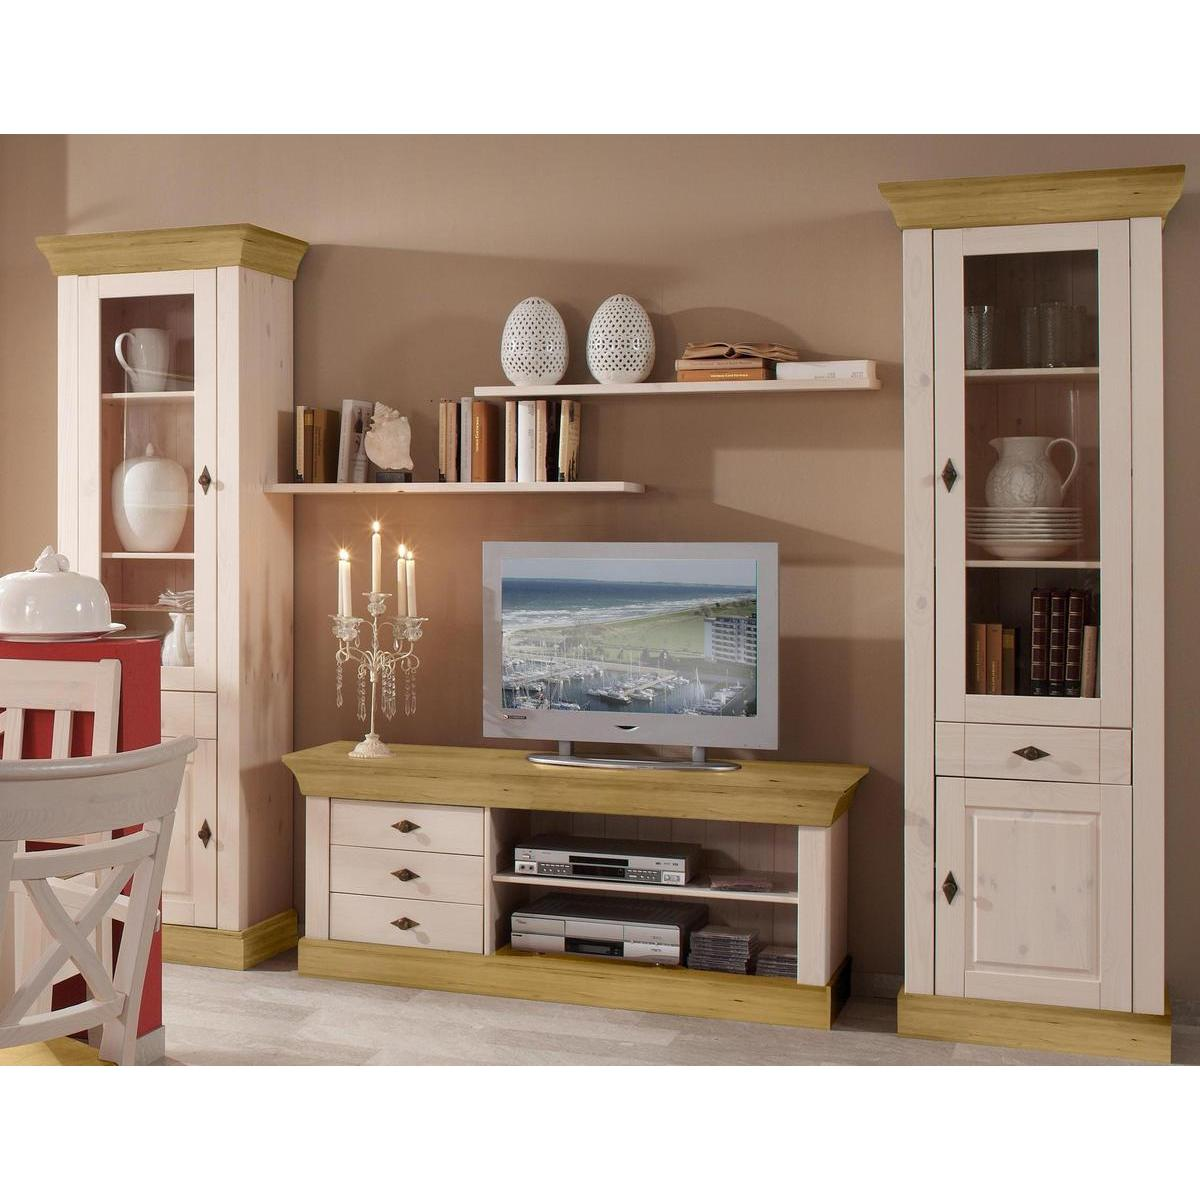 landhaus tv lowboard kiefer 2 farbig wei gebeizt ge lt. Black Bedroom Furniture Sets. Home Design Ideas